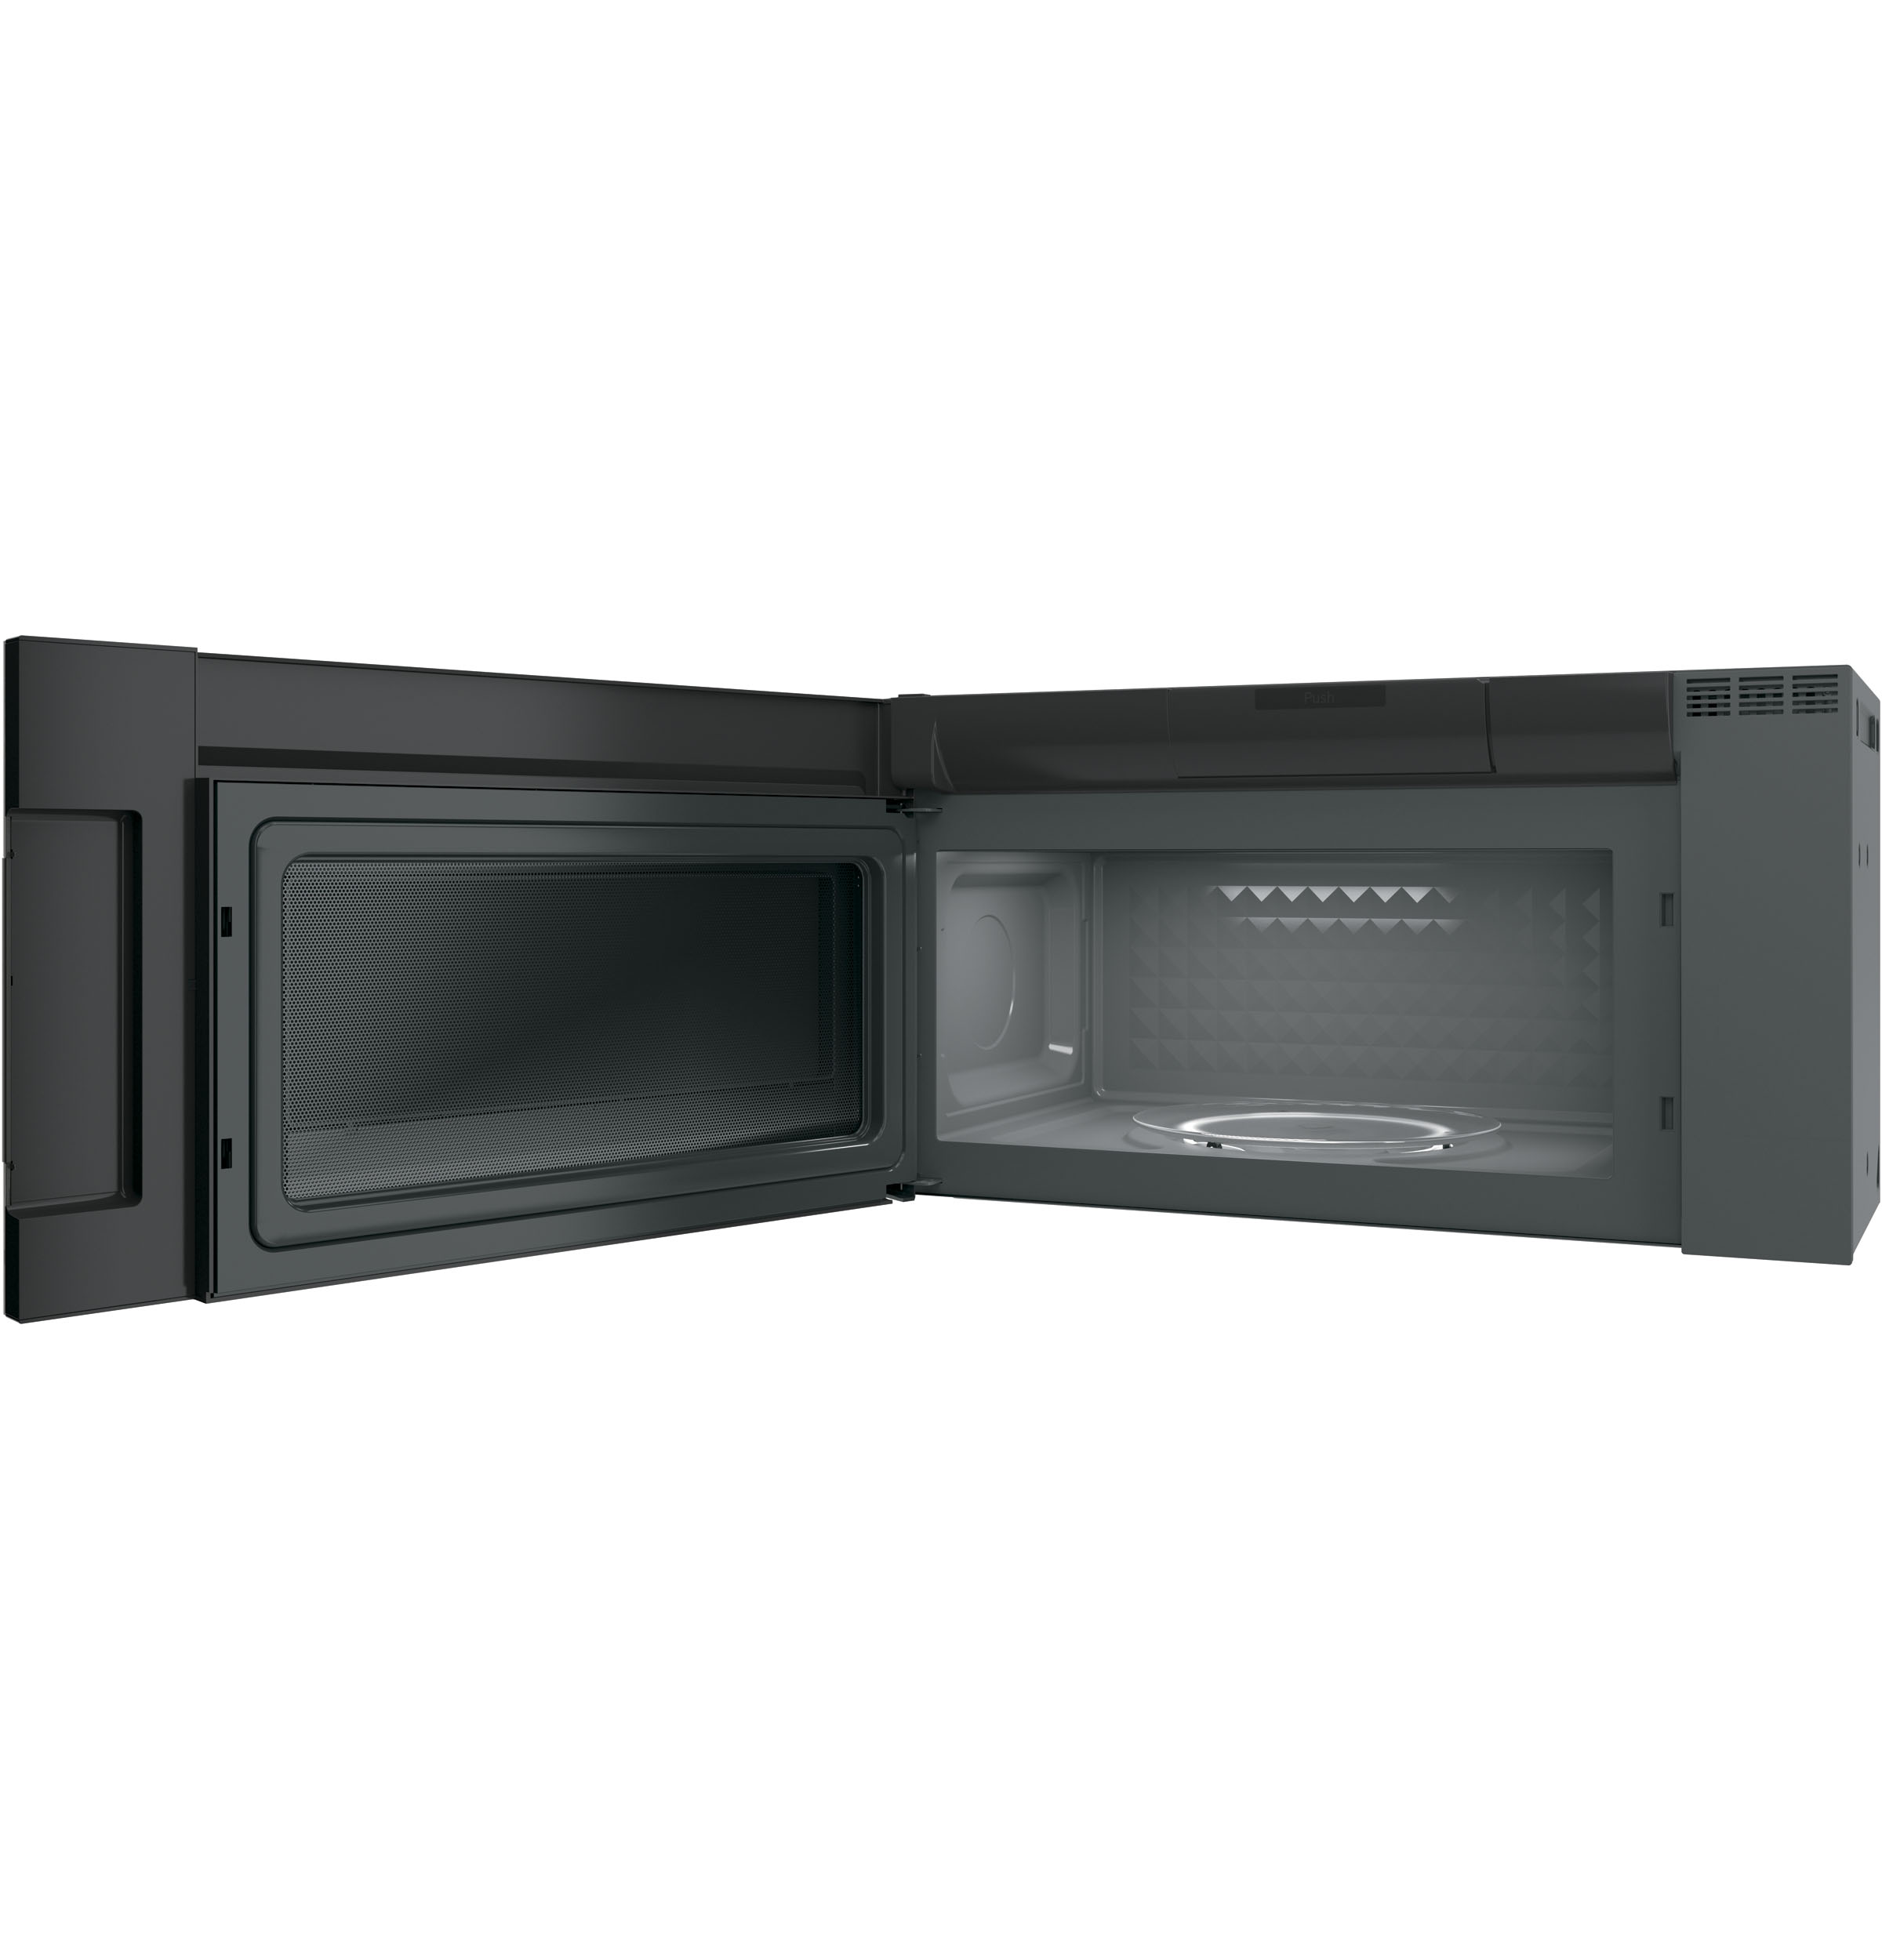 Model: PVM9005BLTS | GE Profile™ Series 2.1 Cu. Ft. Over-the-Range Sensor Microwave Oven